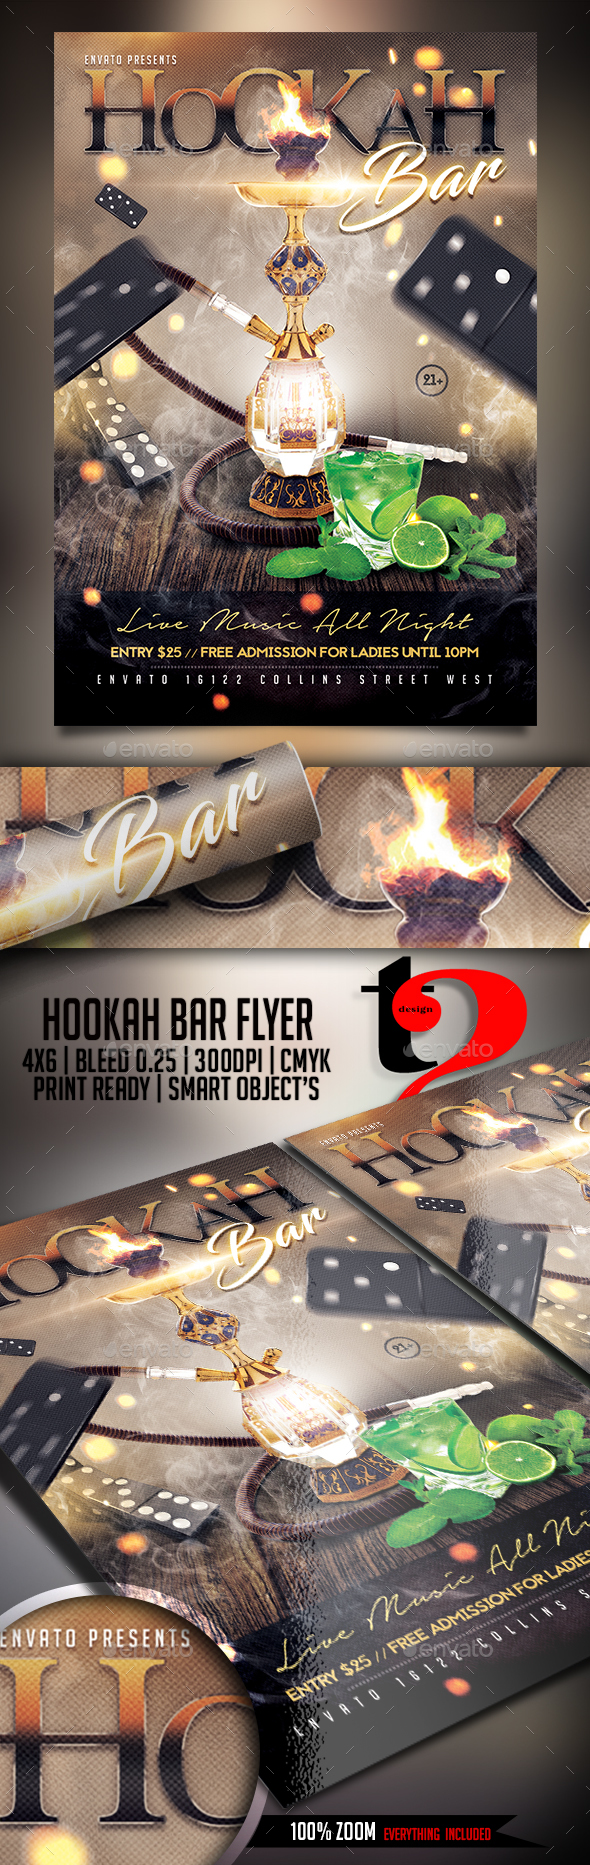 Hookah Bar Flyer Template - Clubs & Parties Events